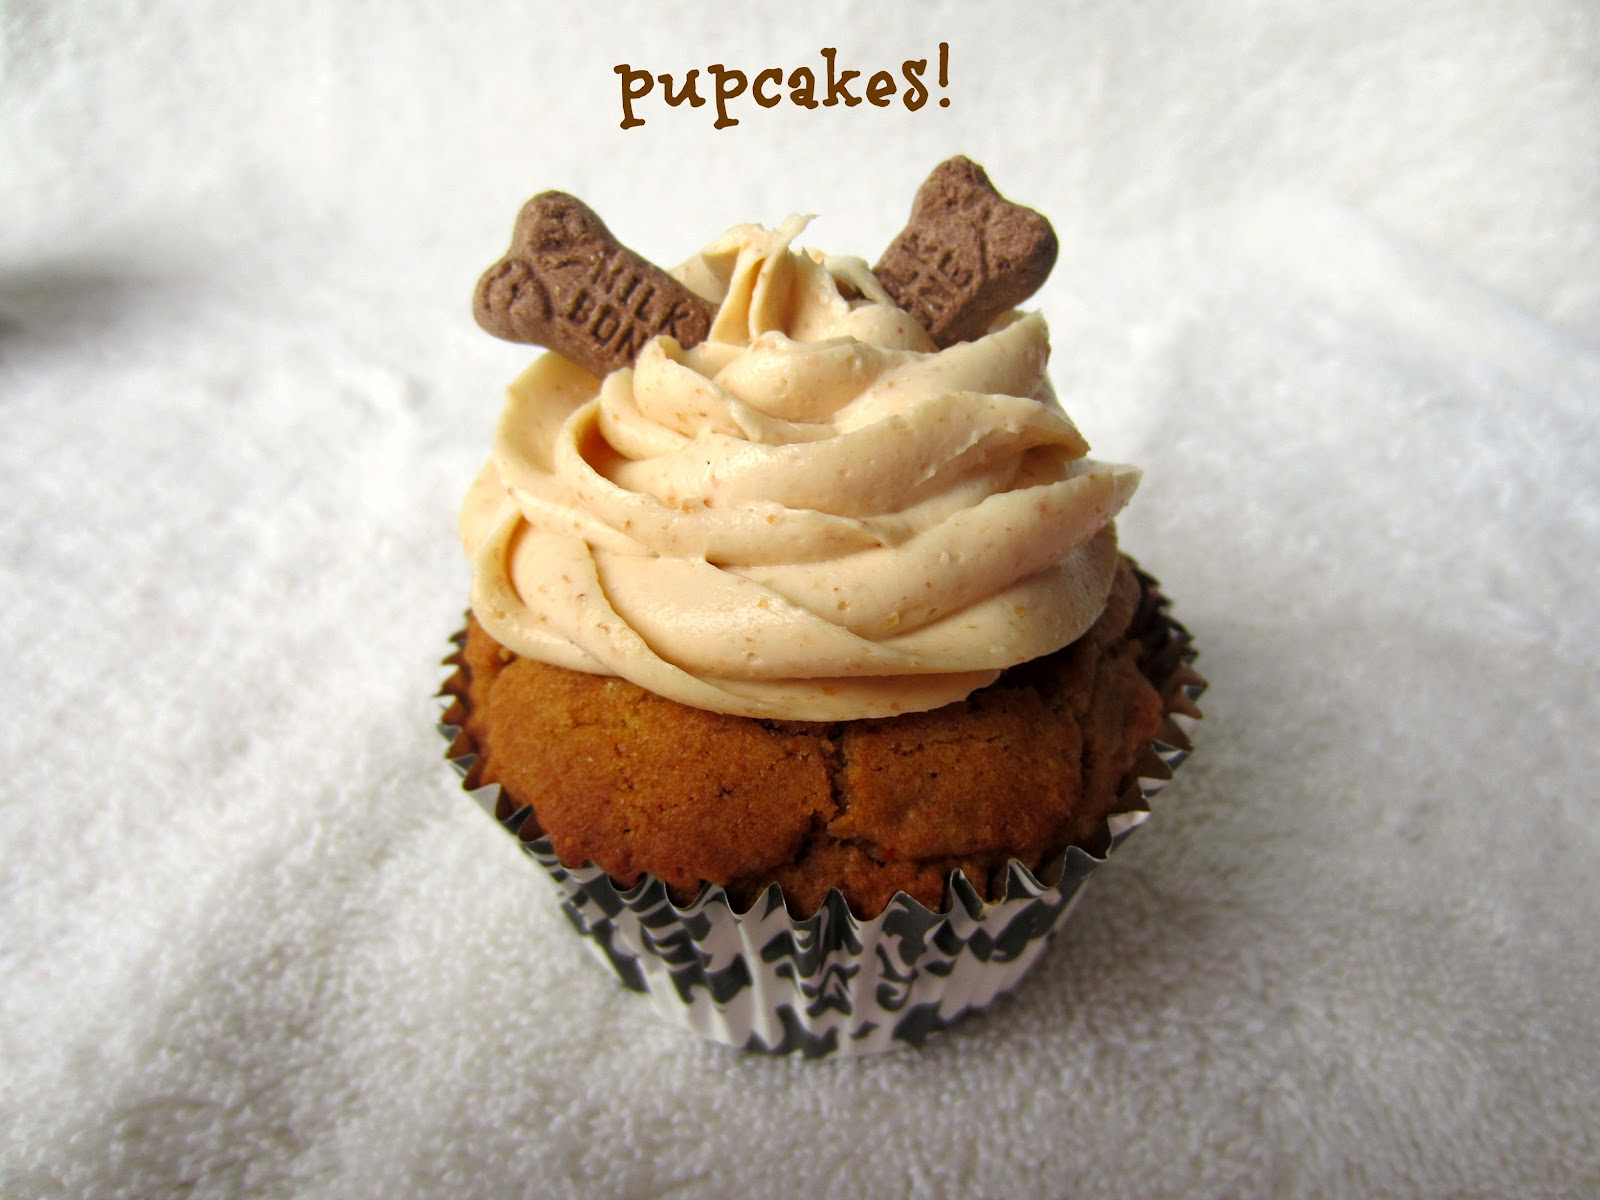 Sugarcoated: Pupcakes! A Cupcake For Your Canine